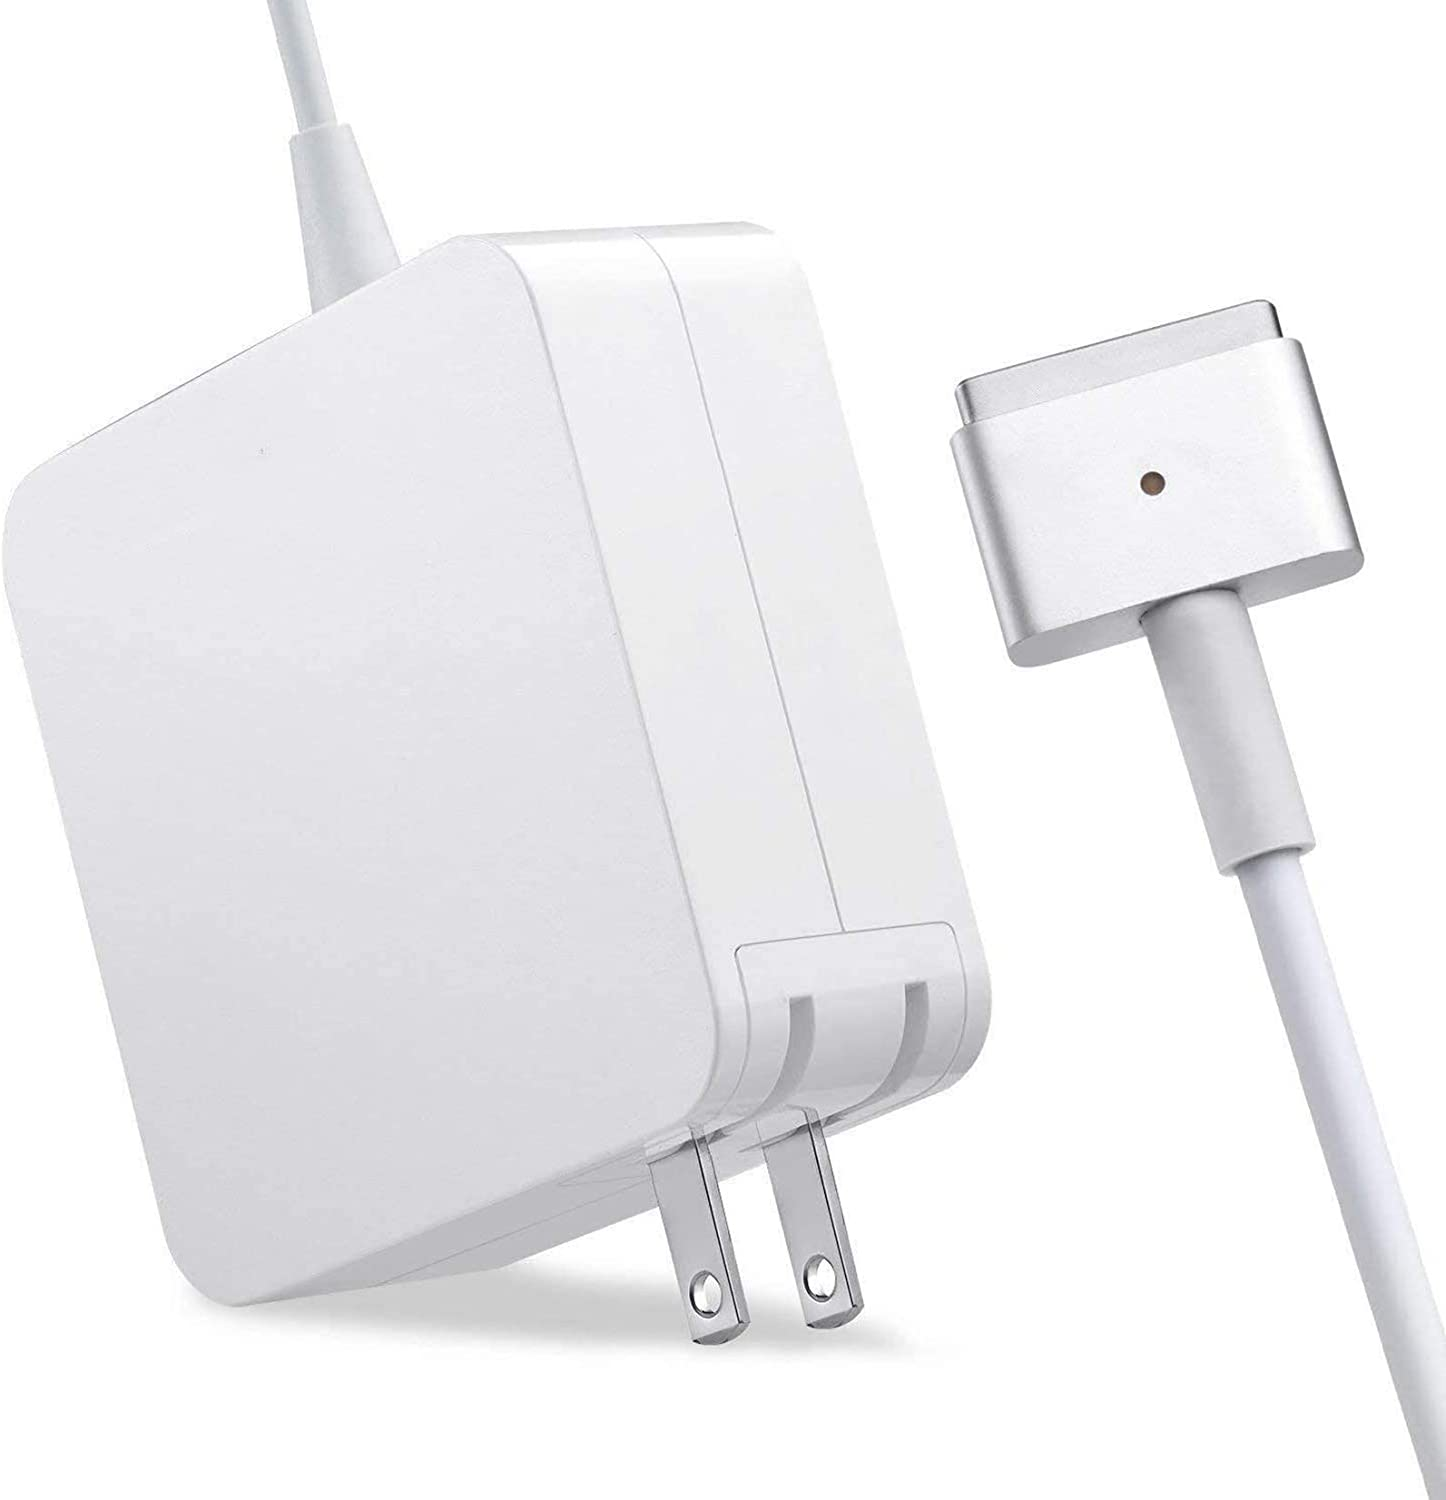 Mac Book Pro Charger, Replacement 85w Magnetic T-Tip Power Adapter Charger for Mac Book Pro 17/15/13 inch (After Mid 2012 Models)